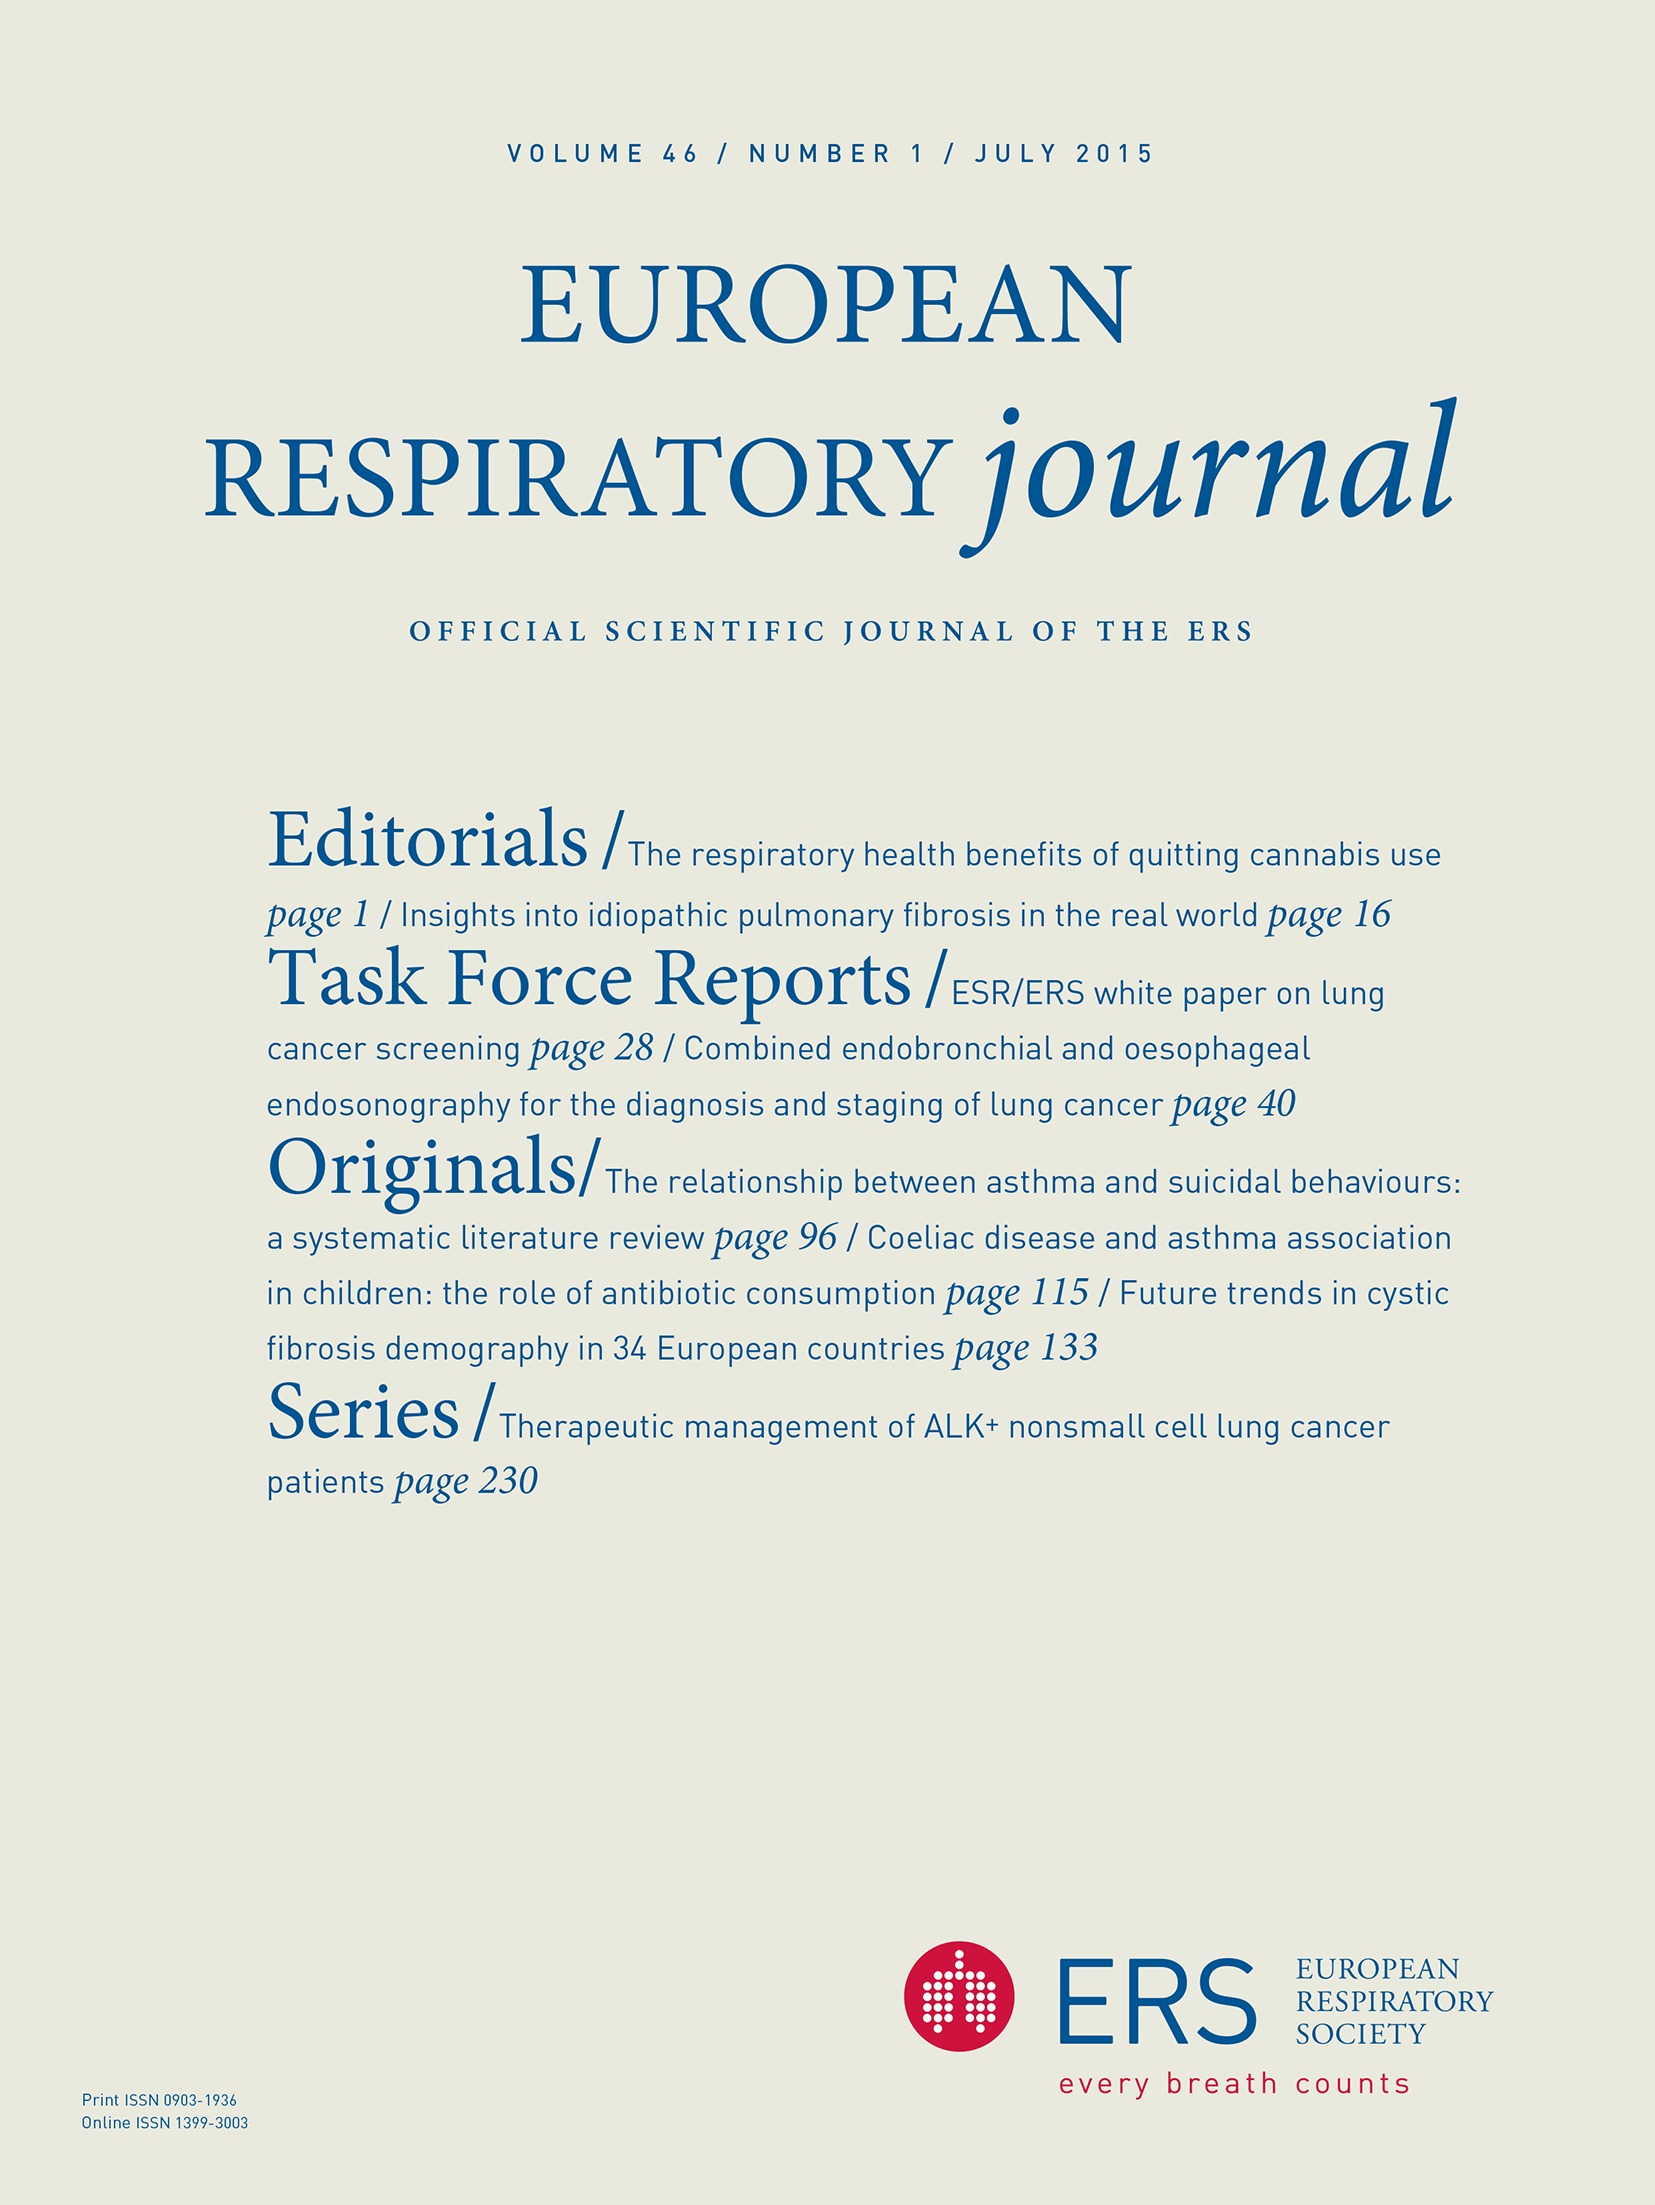 Statement On Smoking Cessation In Copd And Other Pulmonary Diseases